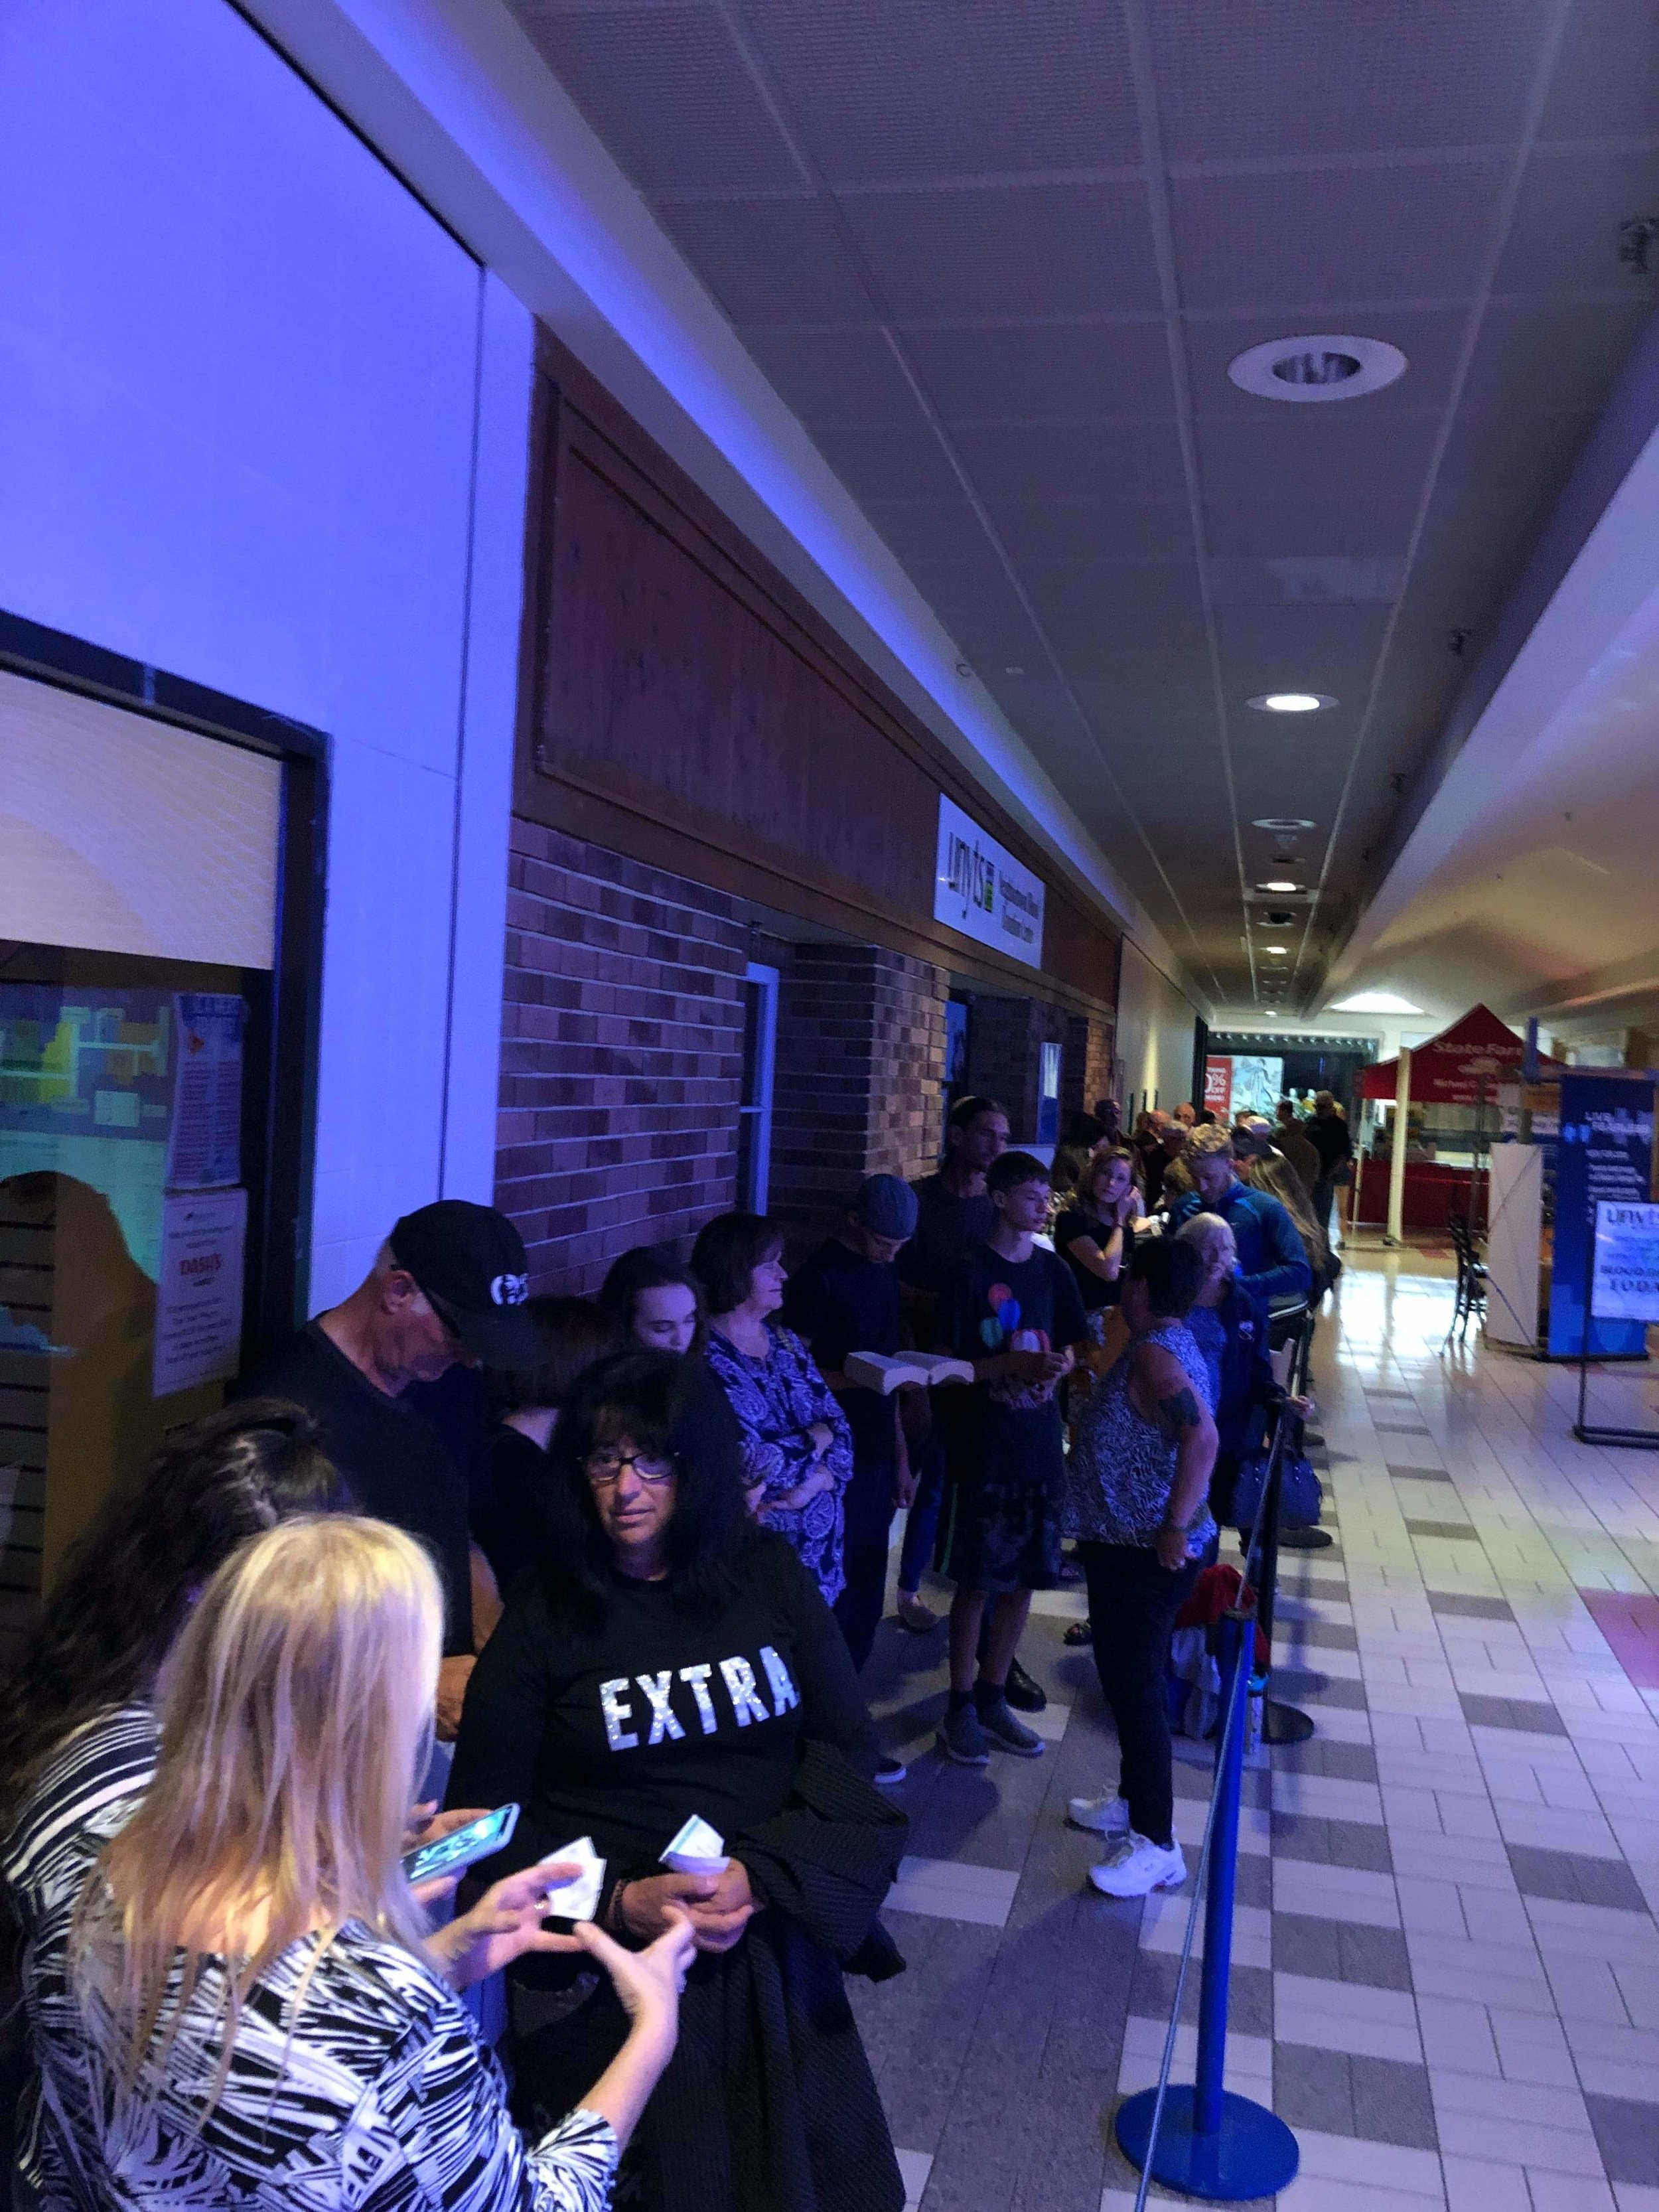 The ticket holders' line outside the theater stretching down into the mall!